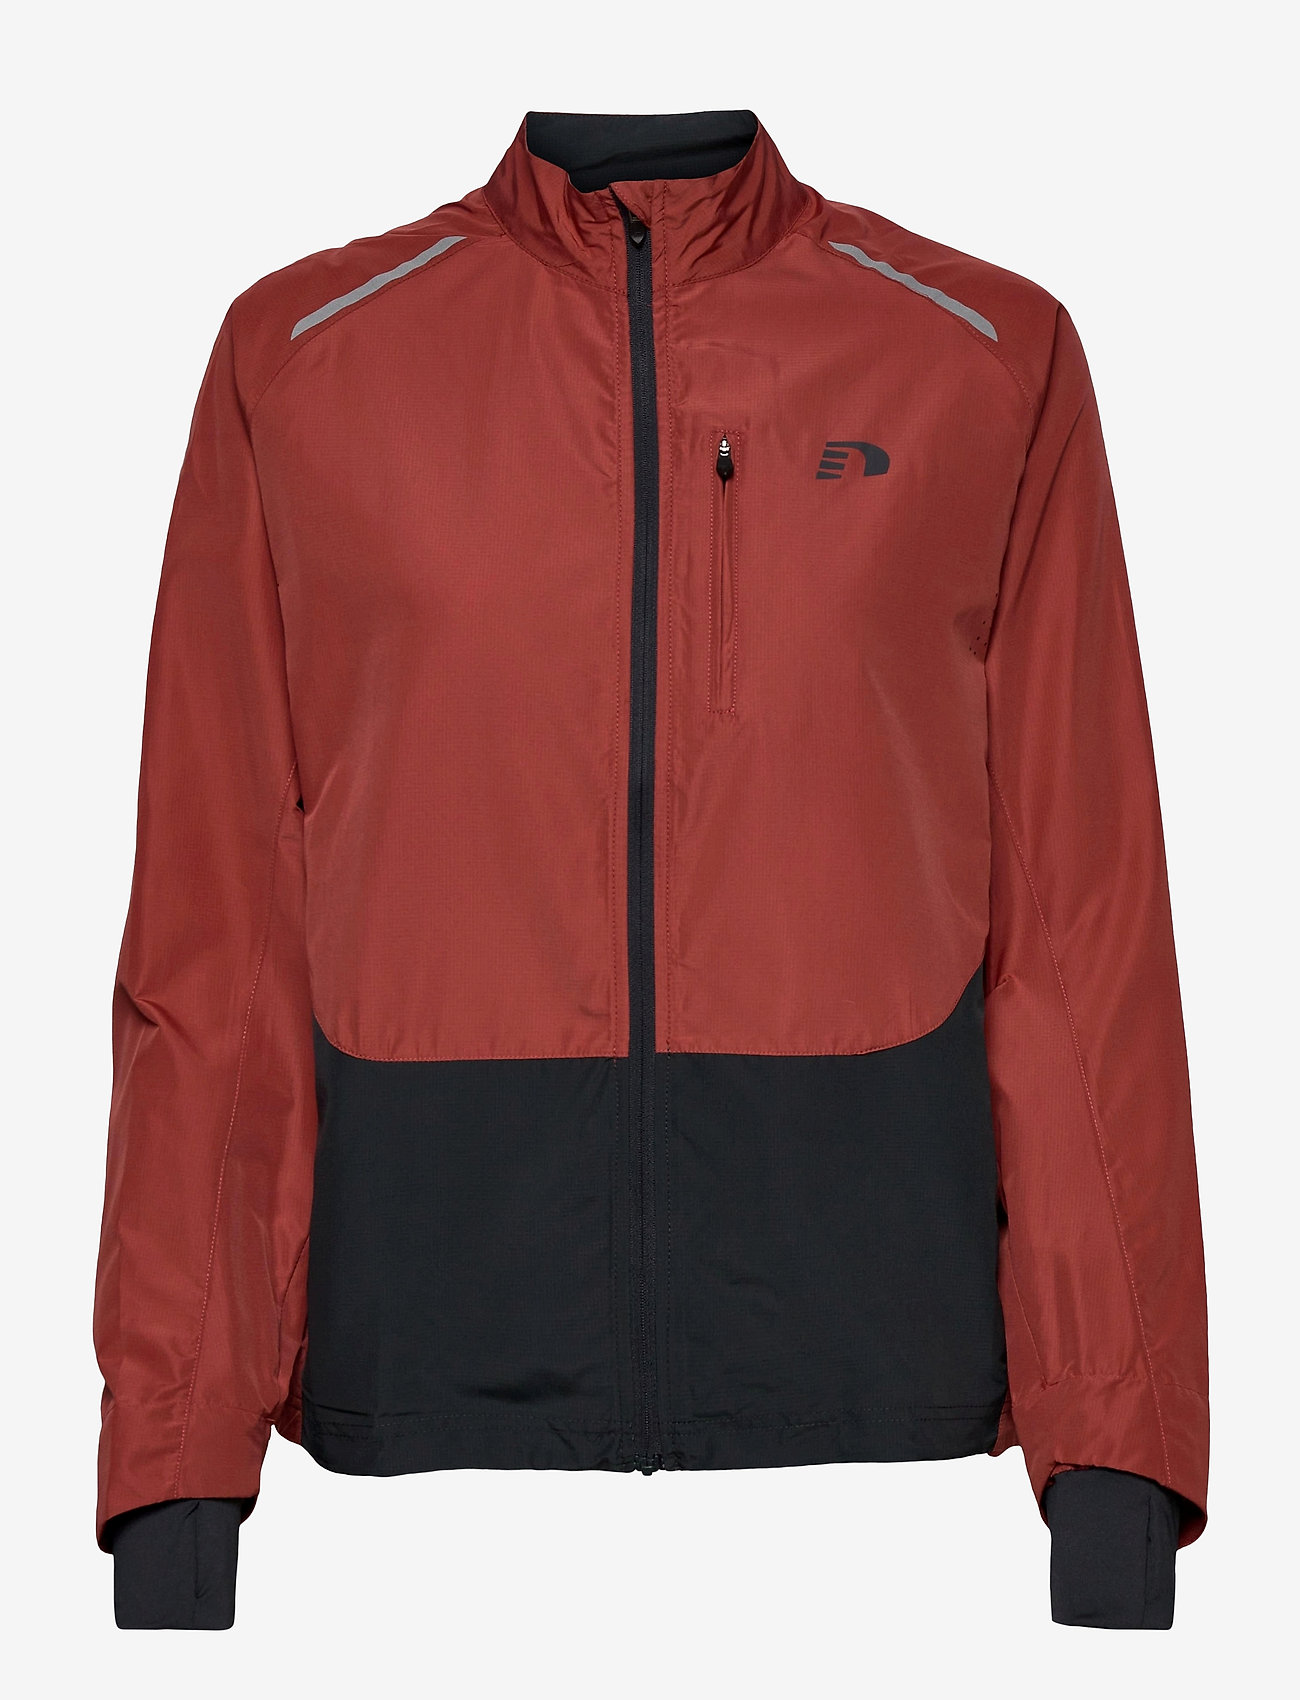 Newline - WOMEN´S JACKET - training jackets - marsala - 0